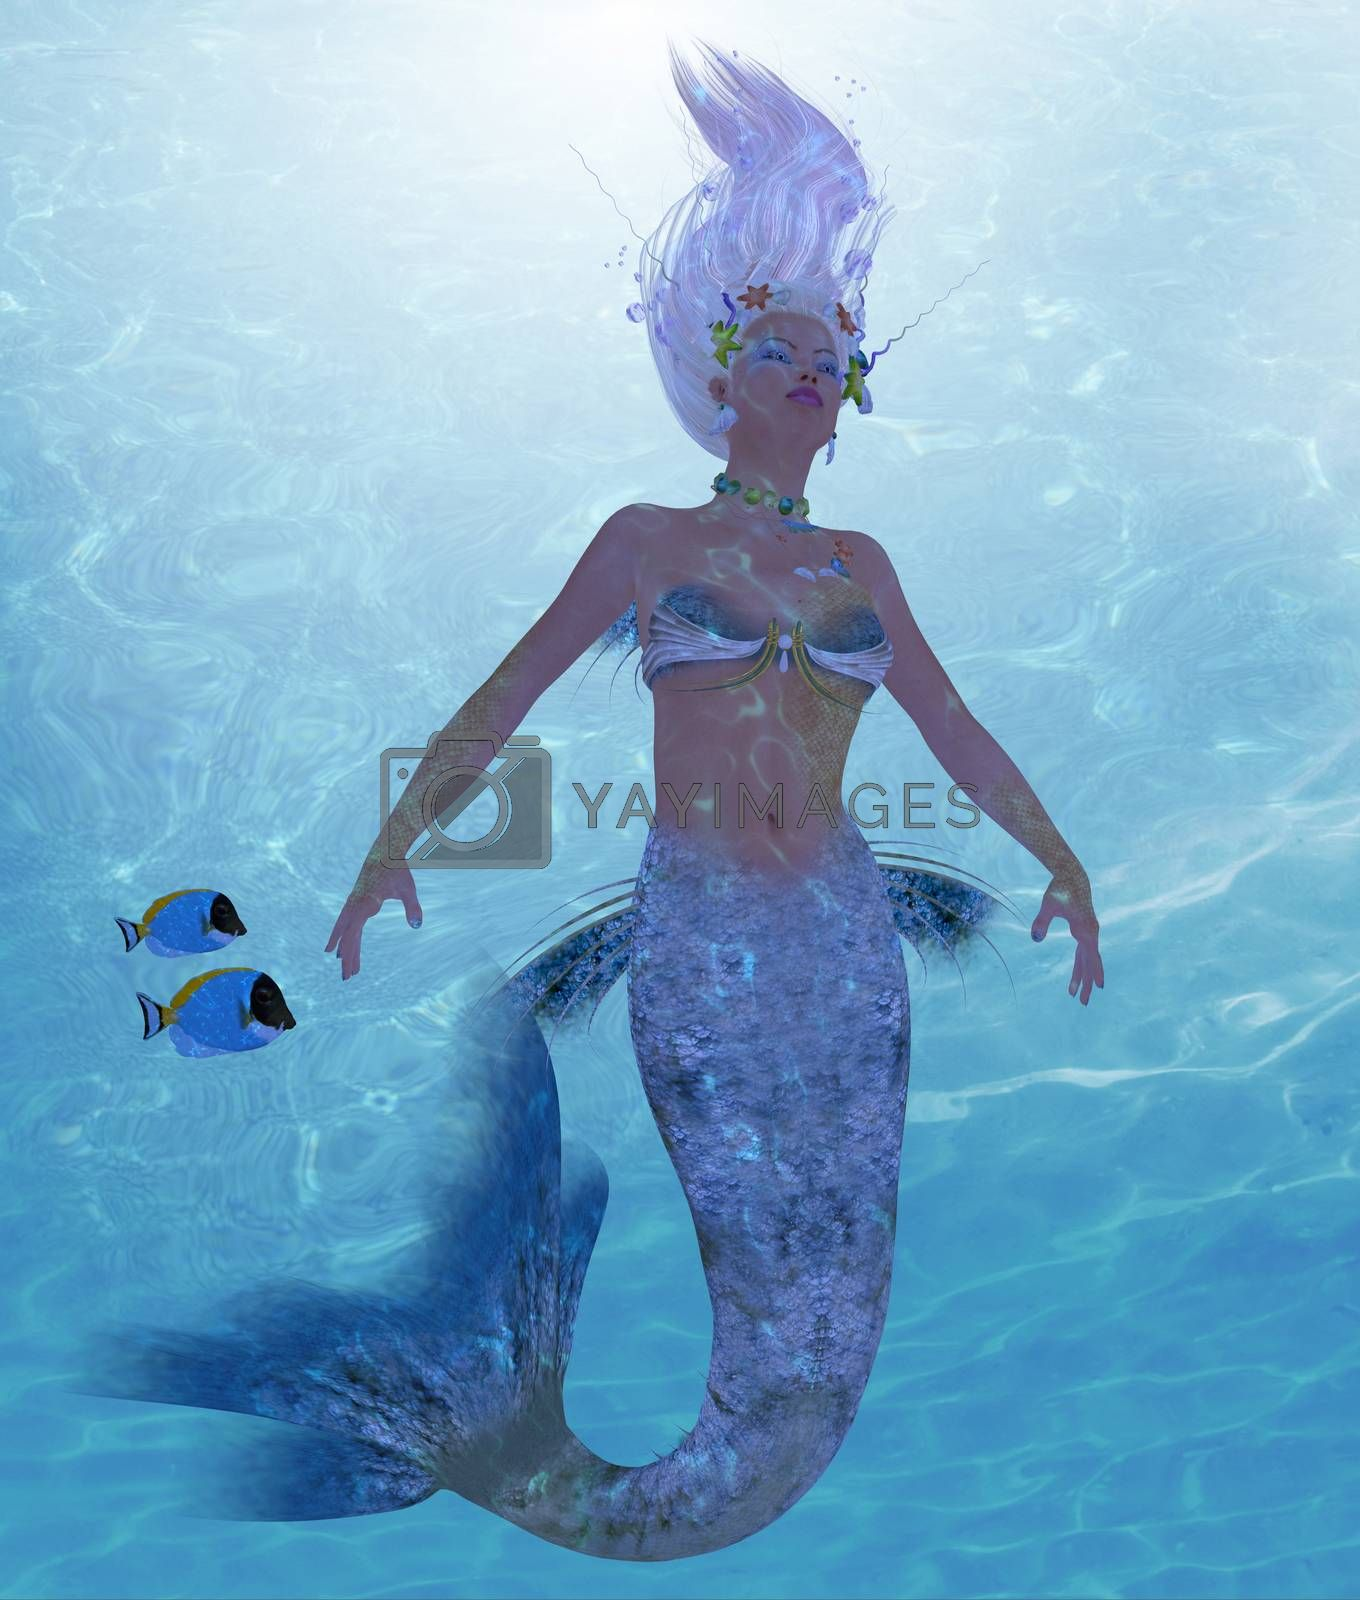 A mermaid is a fantasy creature from folklore and myth that has a fish tail and a woman's upper body.